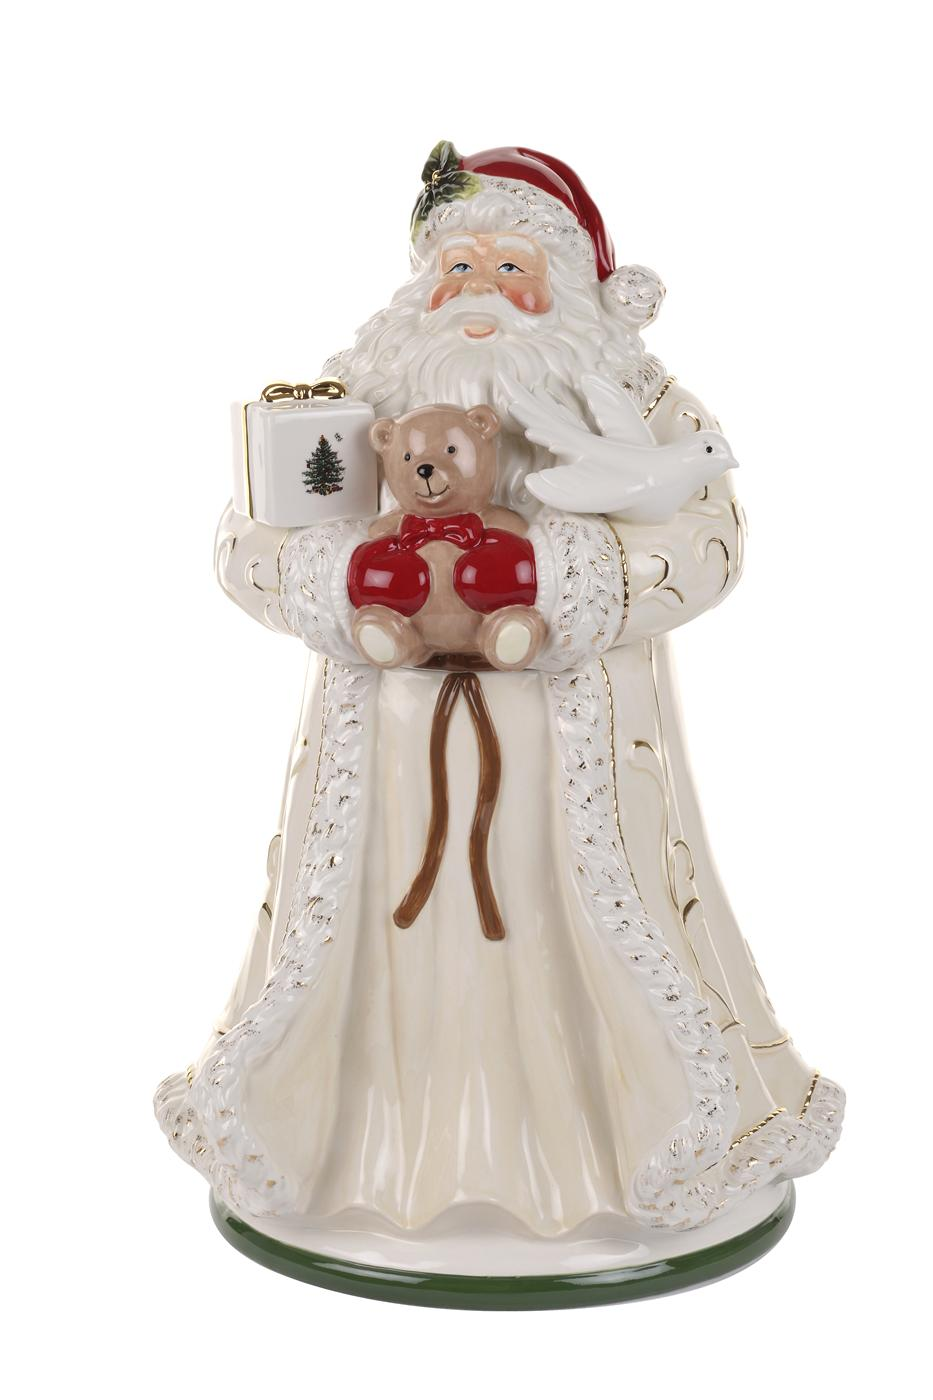 Spode Christmas Tree Gold Figural Collection Large Santa Cookie Jar  image number 0